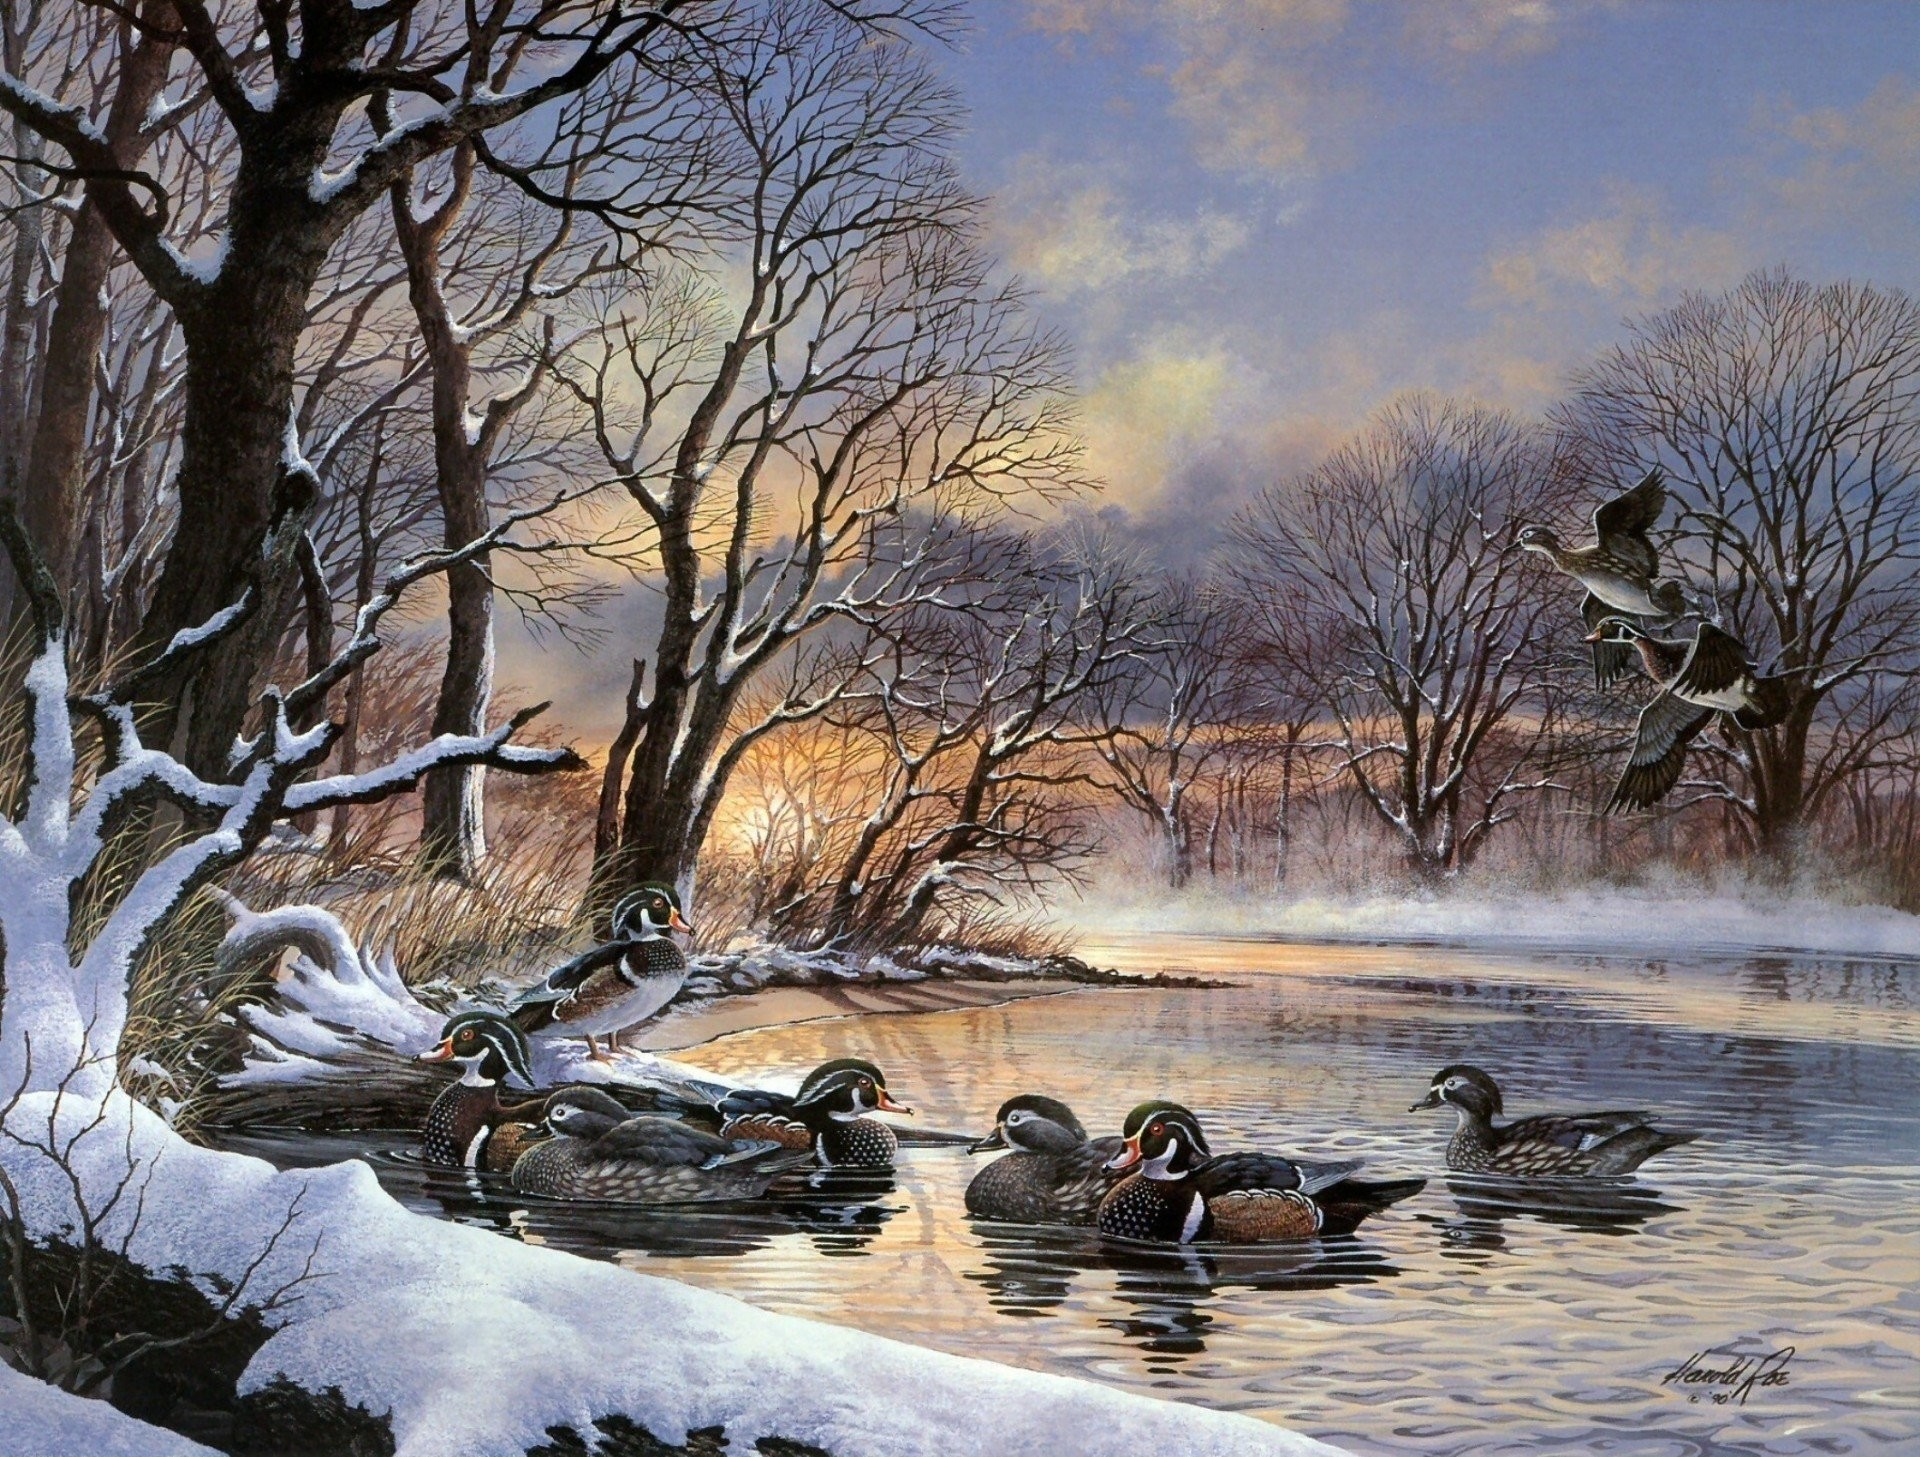 Res: 1920x1457, a flock of ducks ninja pattern sunset lake central park winter